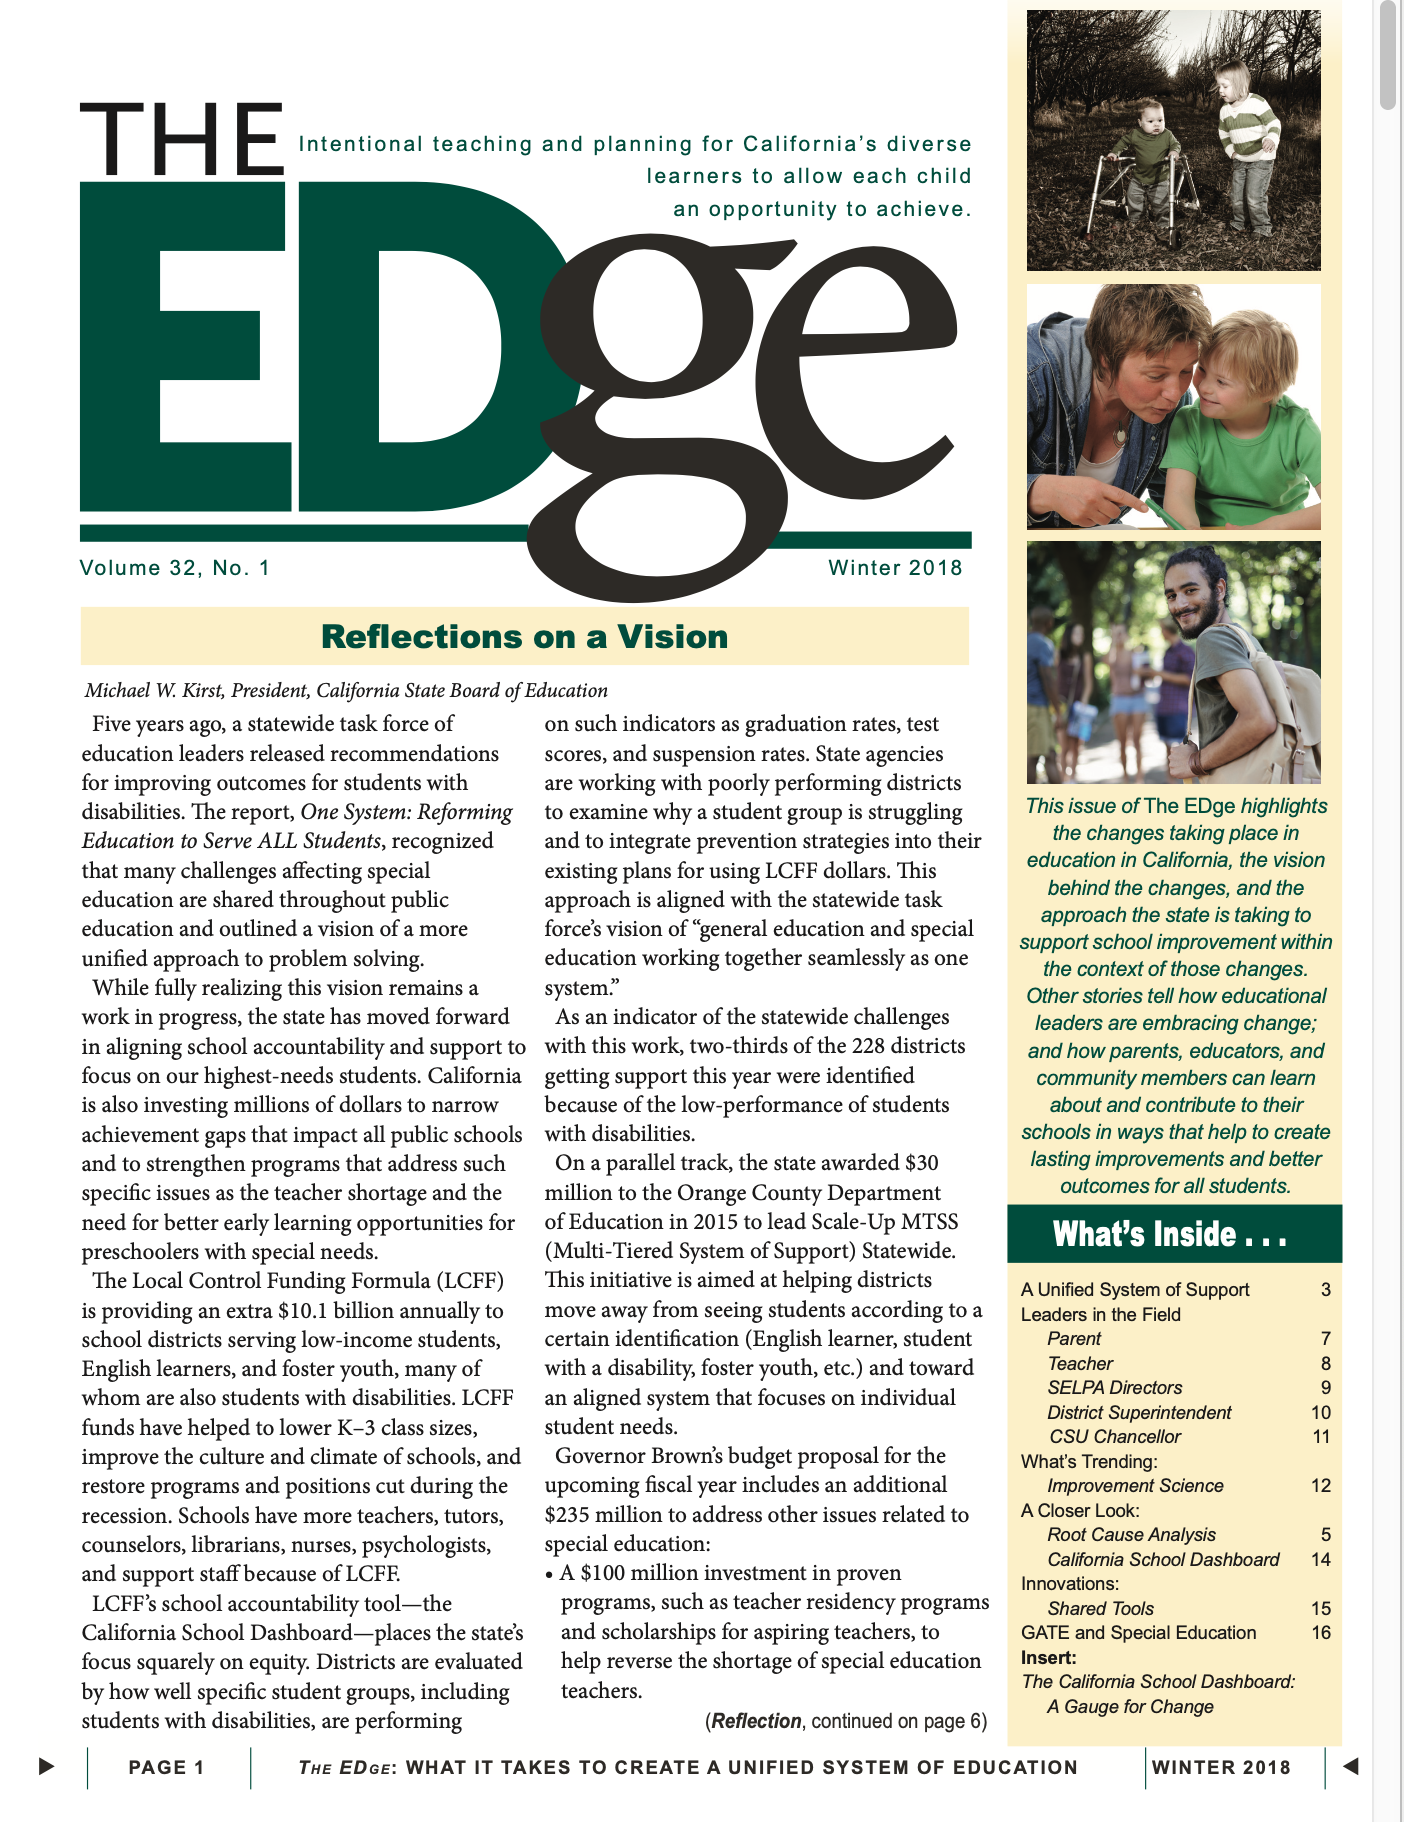 The EDge Newsletter: Winter 2018